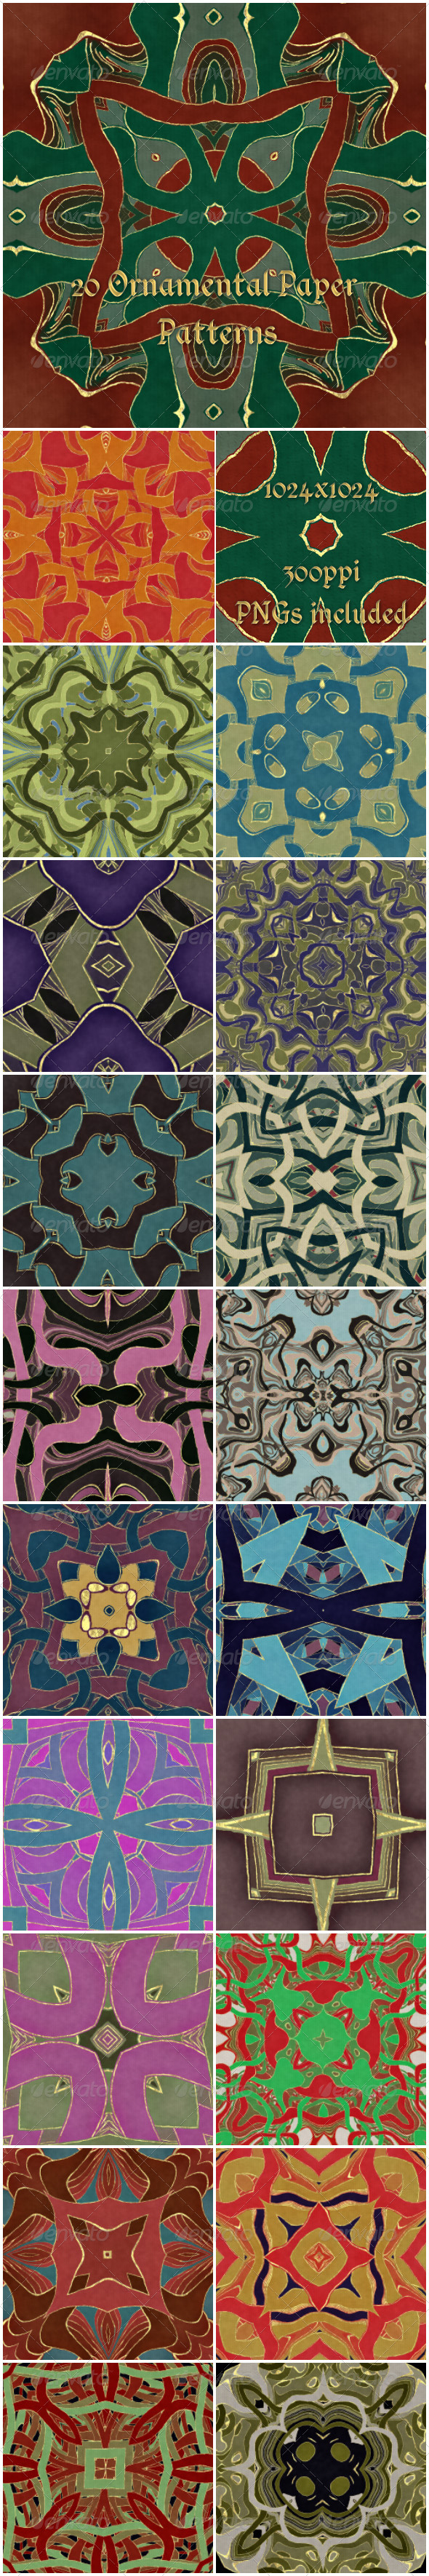 20 Ornamental Paper Patterns - Artistic Textures / Fills / Patterns